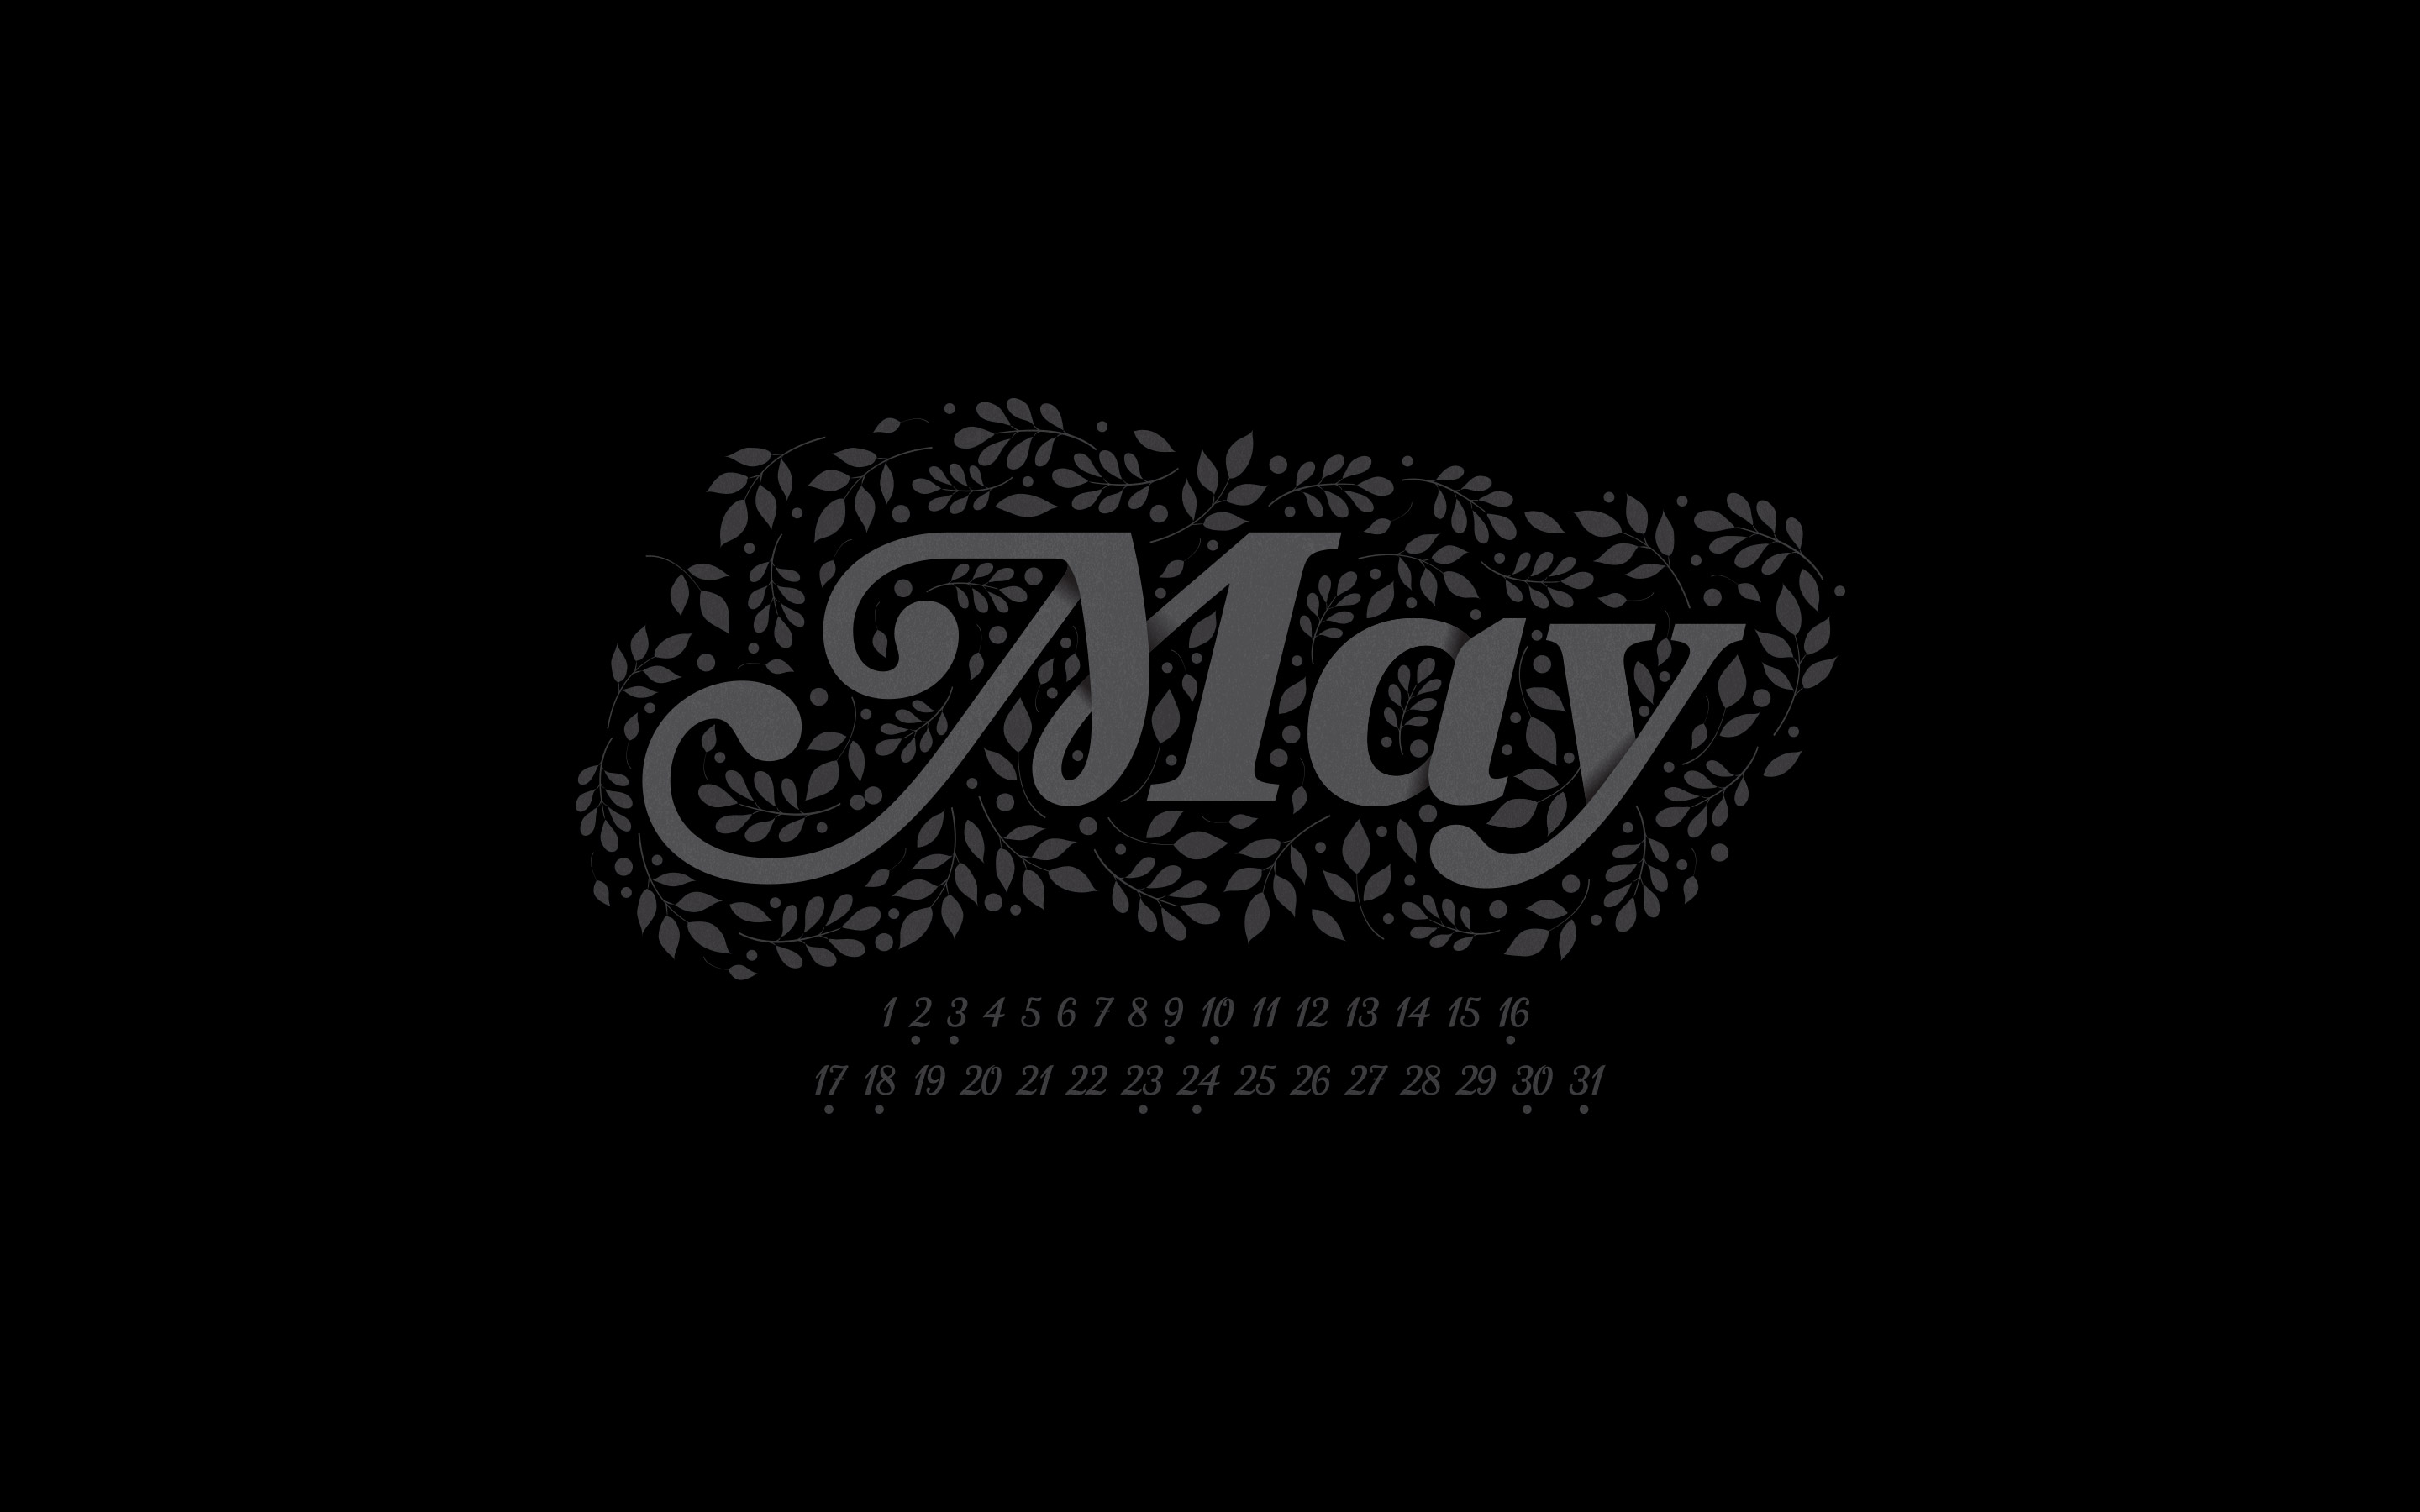 May 2015 Desktop Calendar Wallpaper Paper Leaf 2880x1800